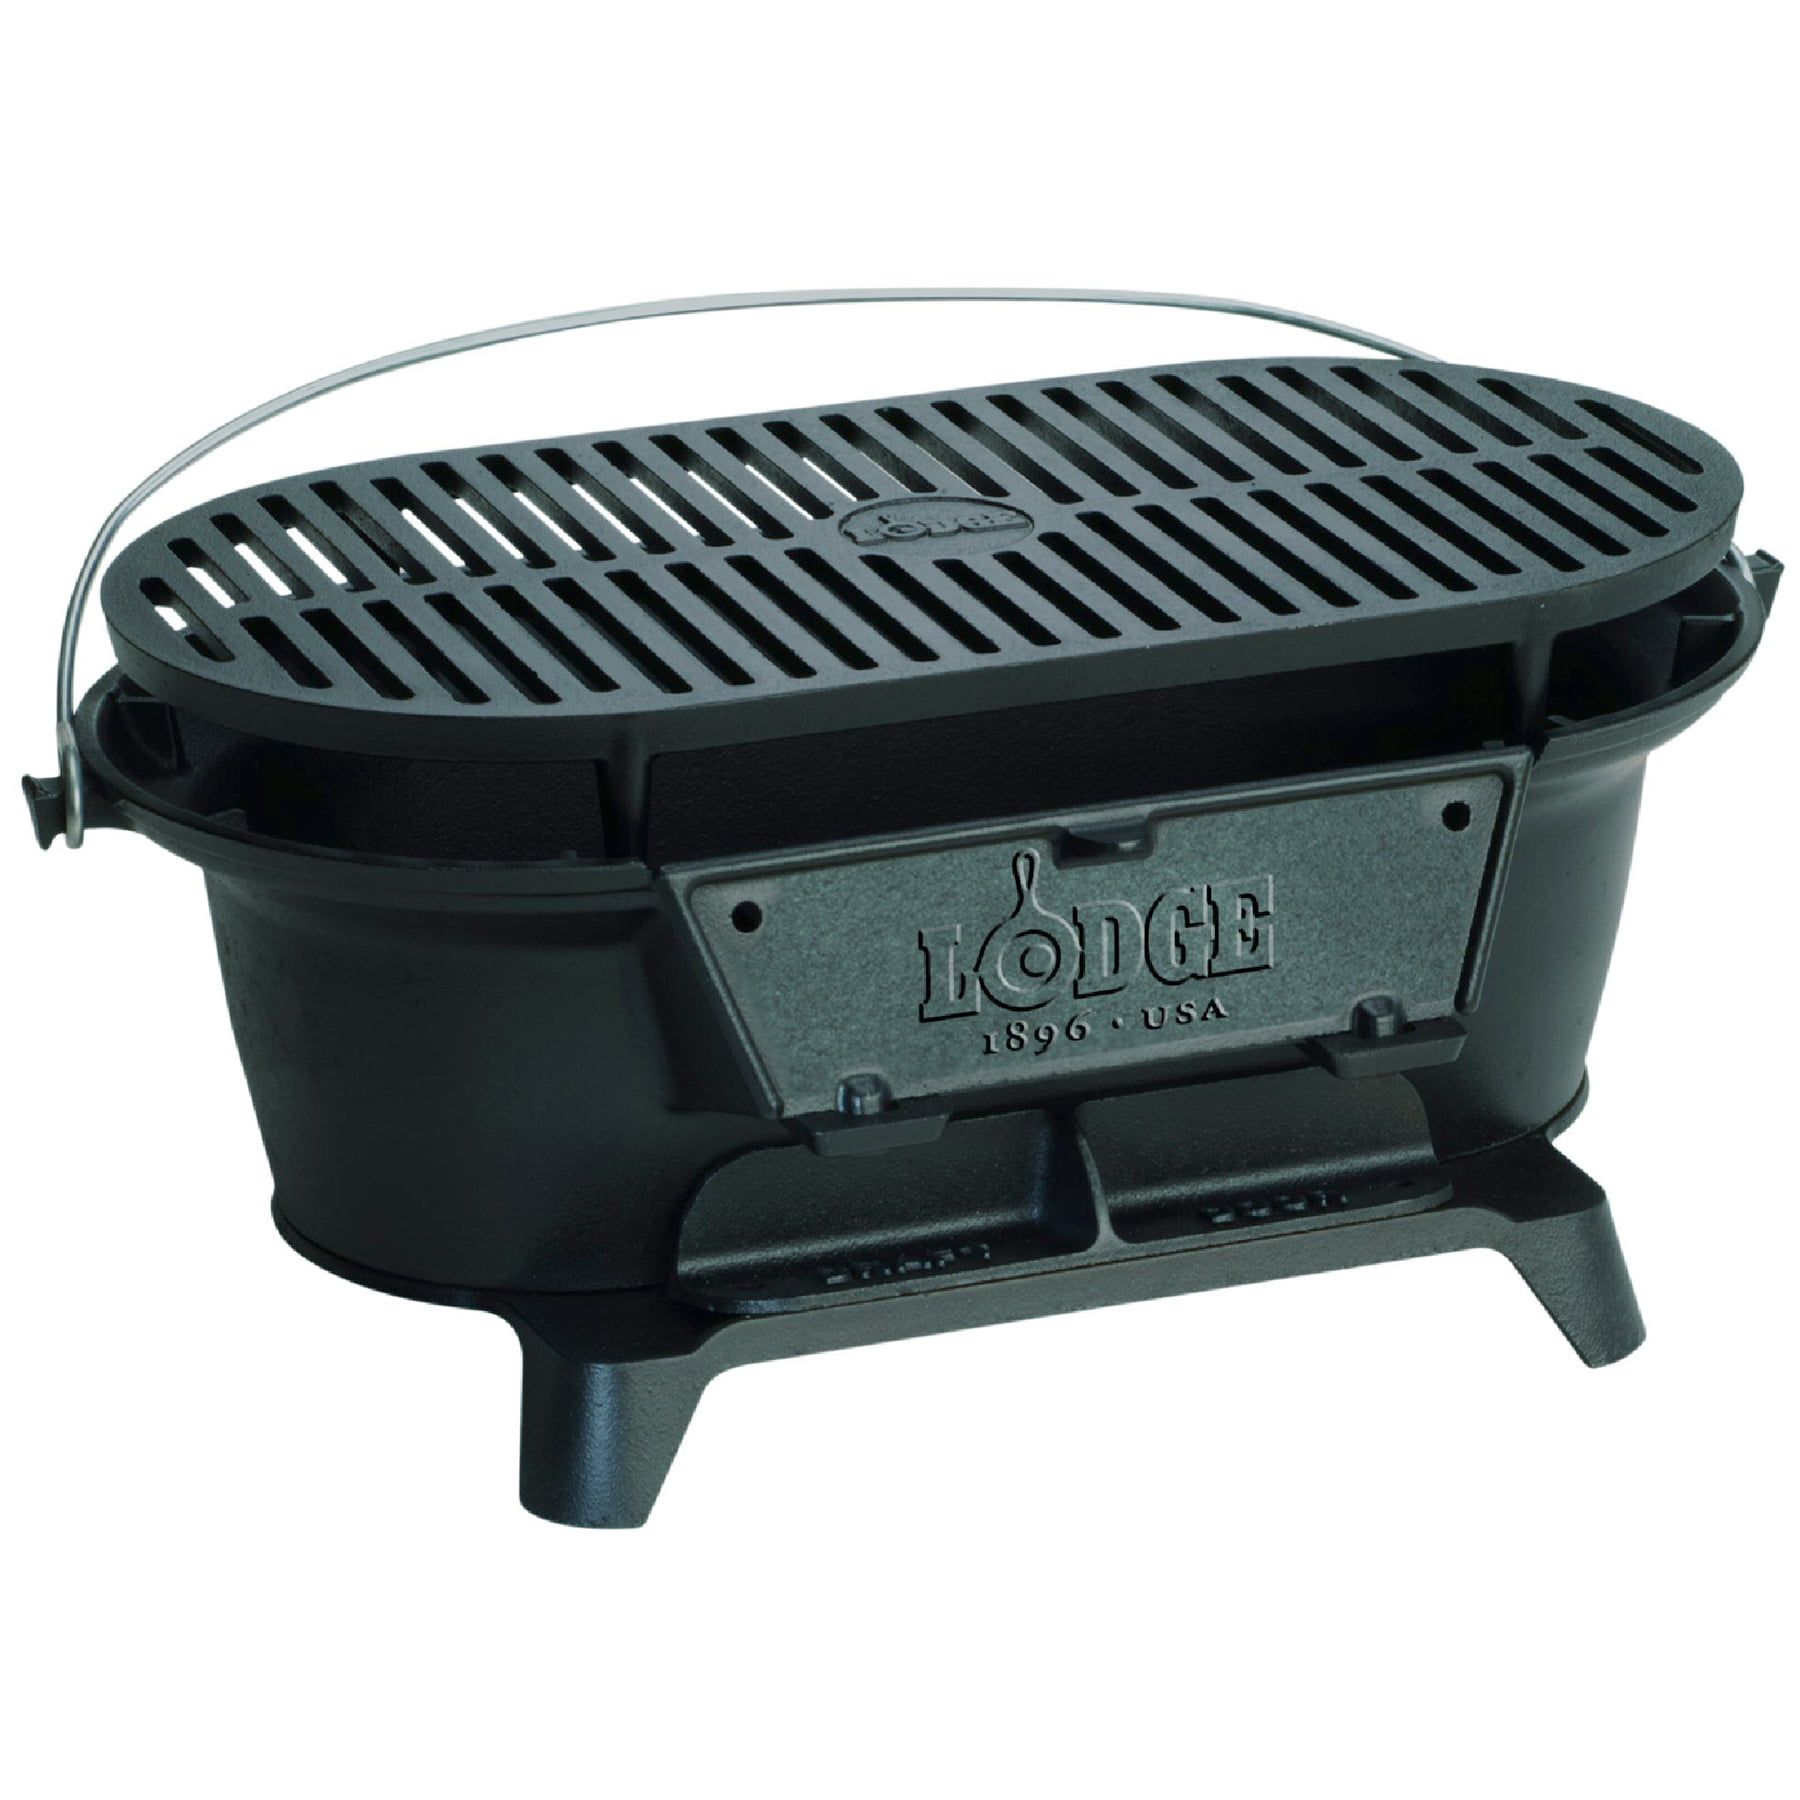 "Lodge L410 9"" X 17"" Hibachi Style Charcoal Grill by Lodge Mfg Co"